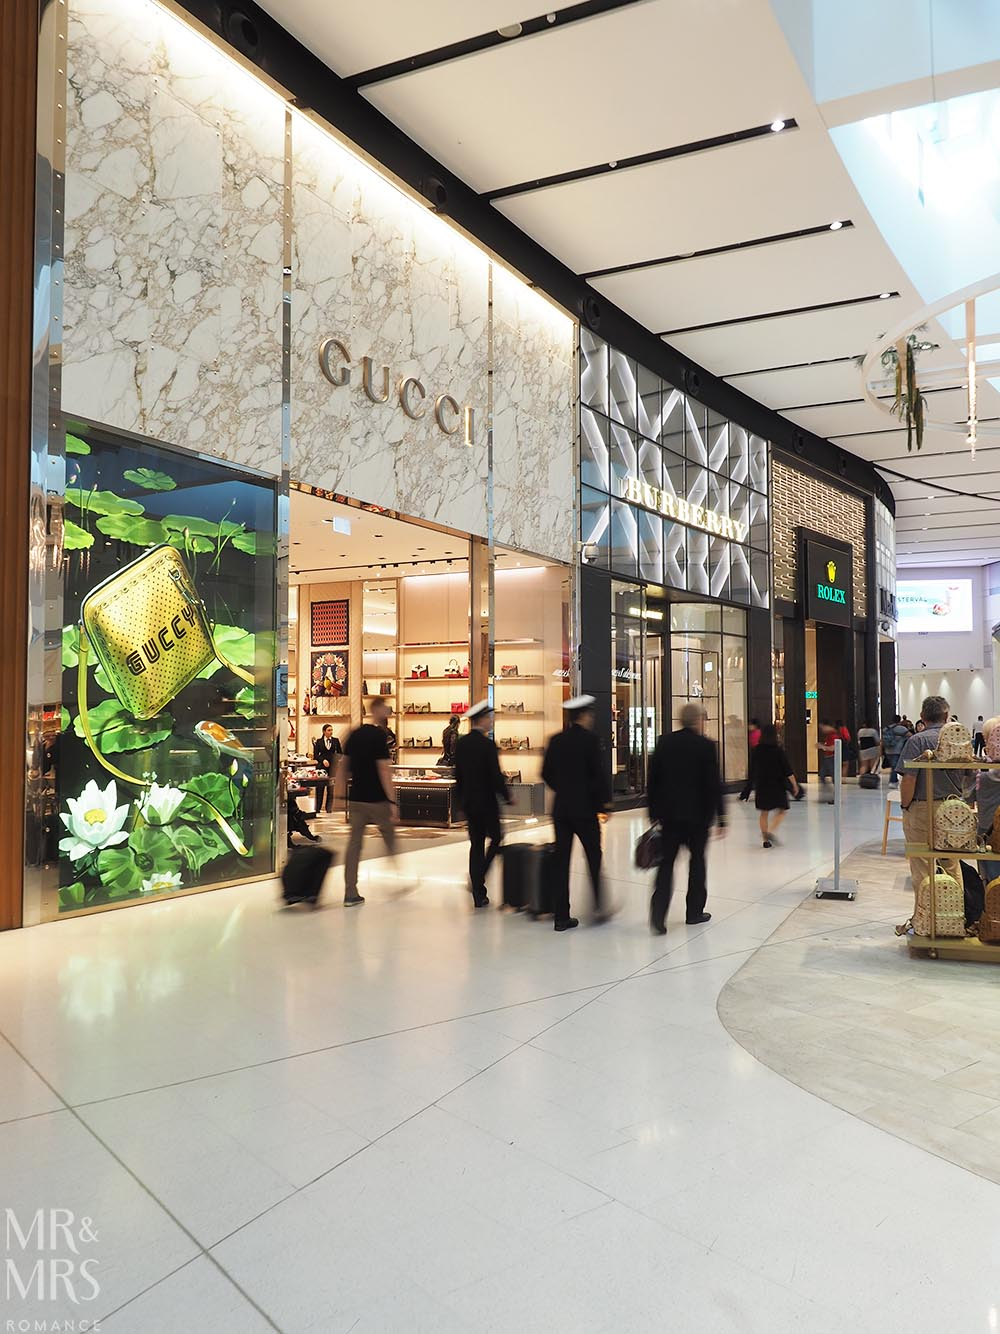 Sydney Airport guide - #wortharrivingearlyfor Gucci - MMR